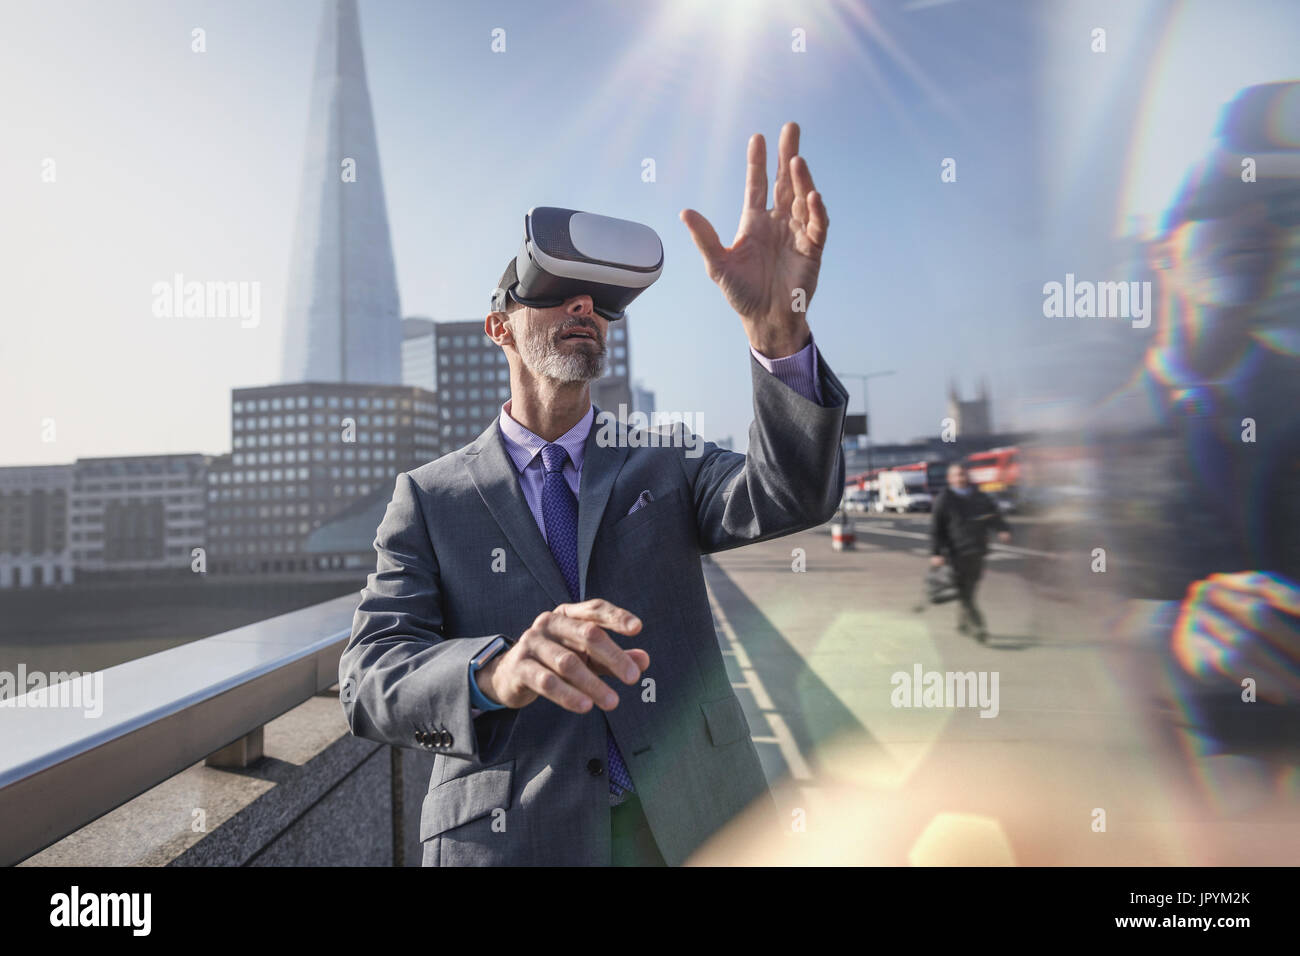 Businessman using virtual reality simulator glasses on sunny urban bridge, London, UK - Stock Image